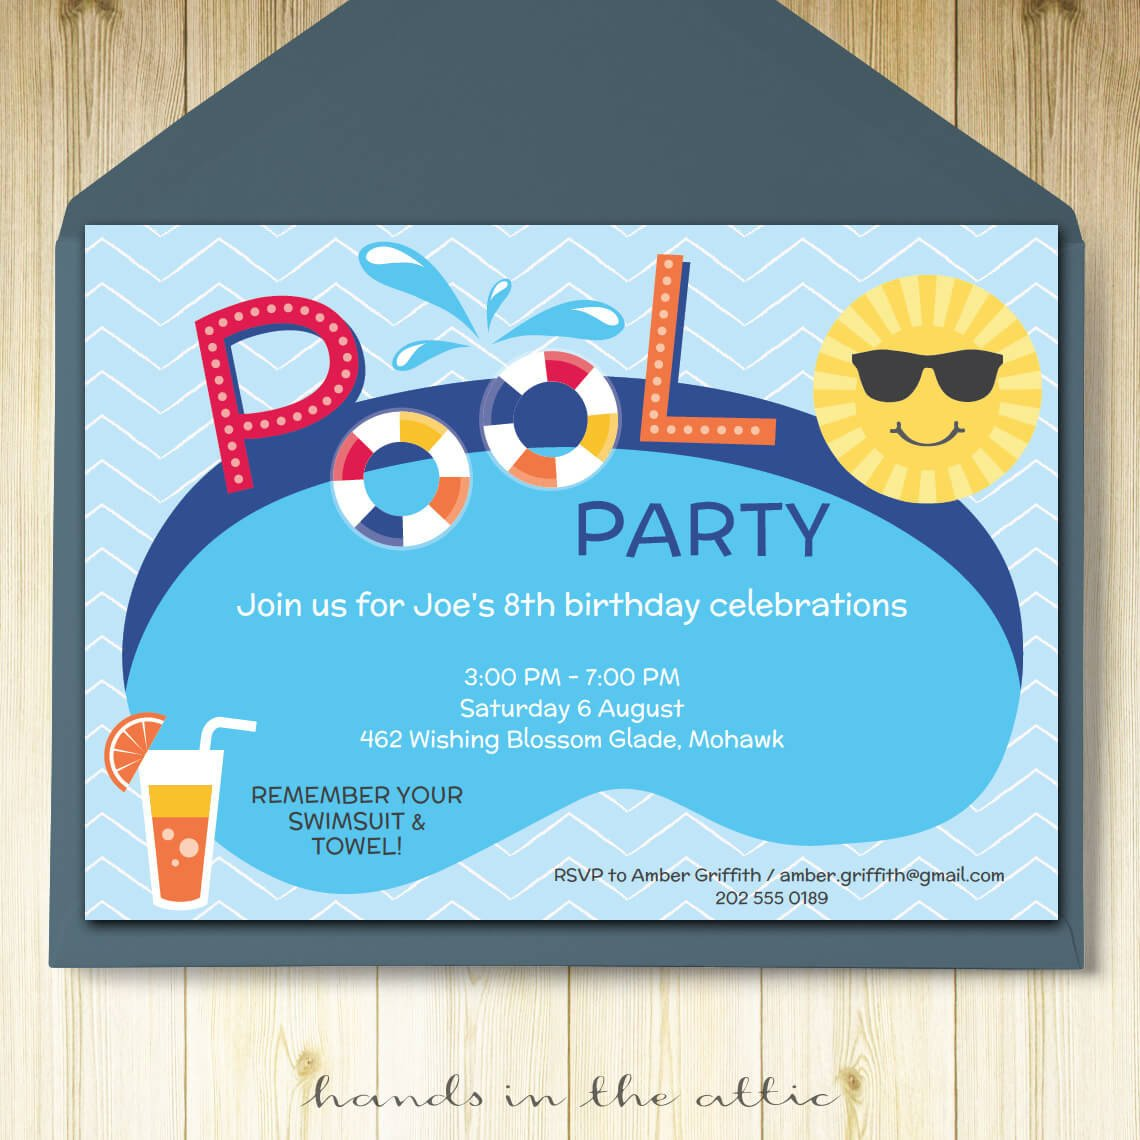 Pool Party Invitations Template Pool Party Invitation Card Editable Template Party Printable